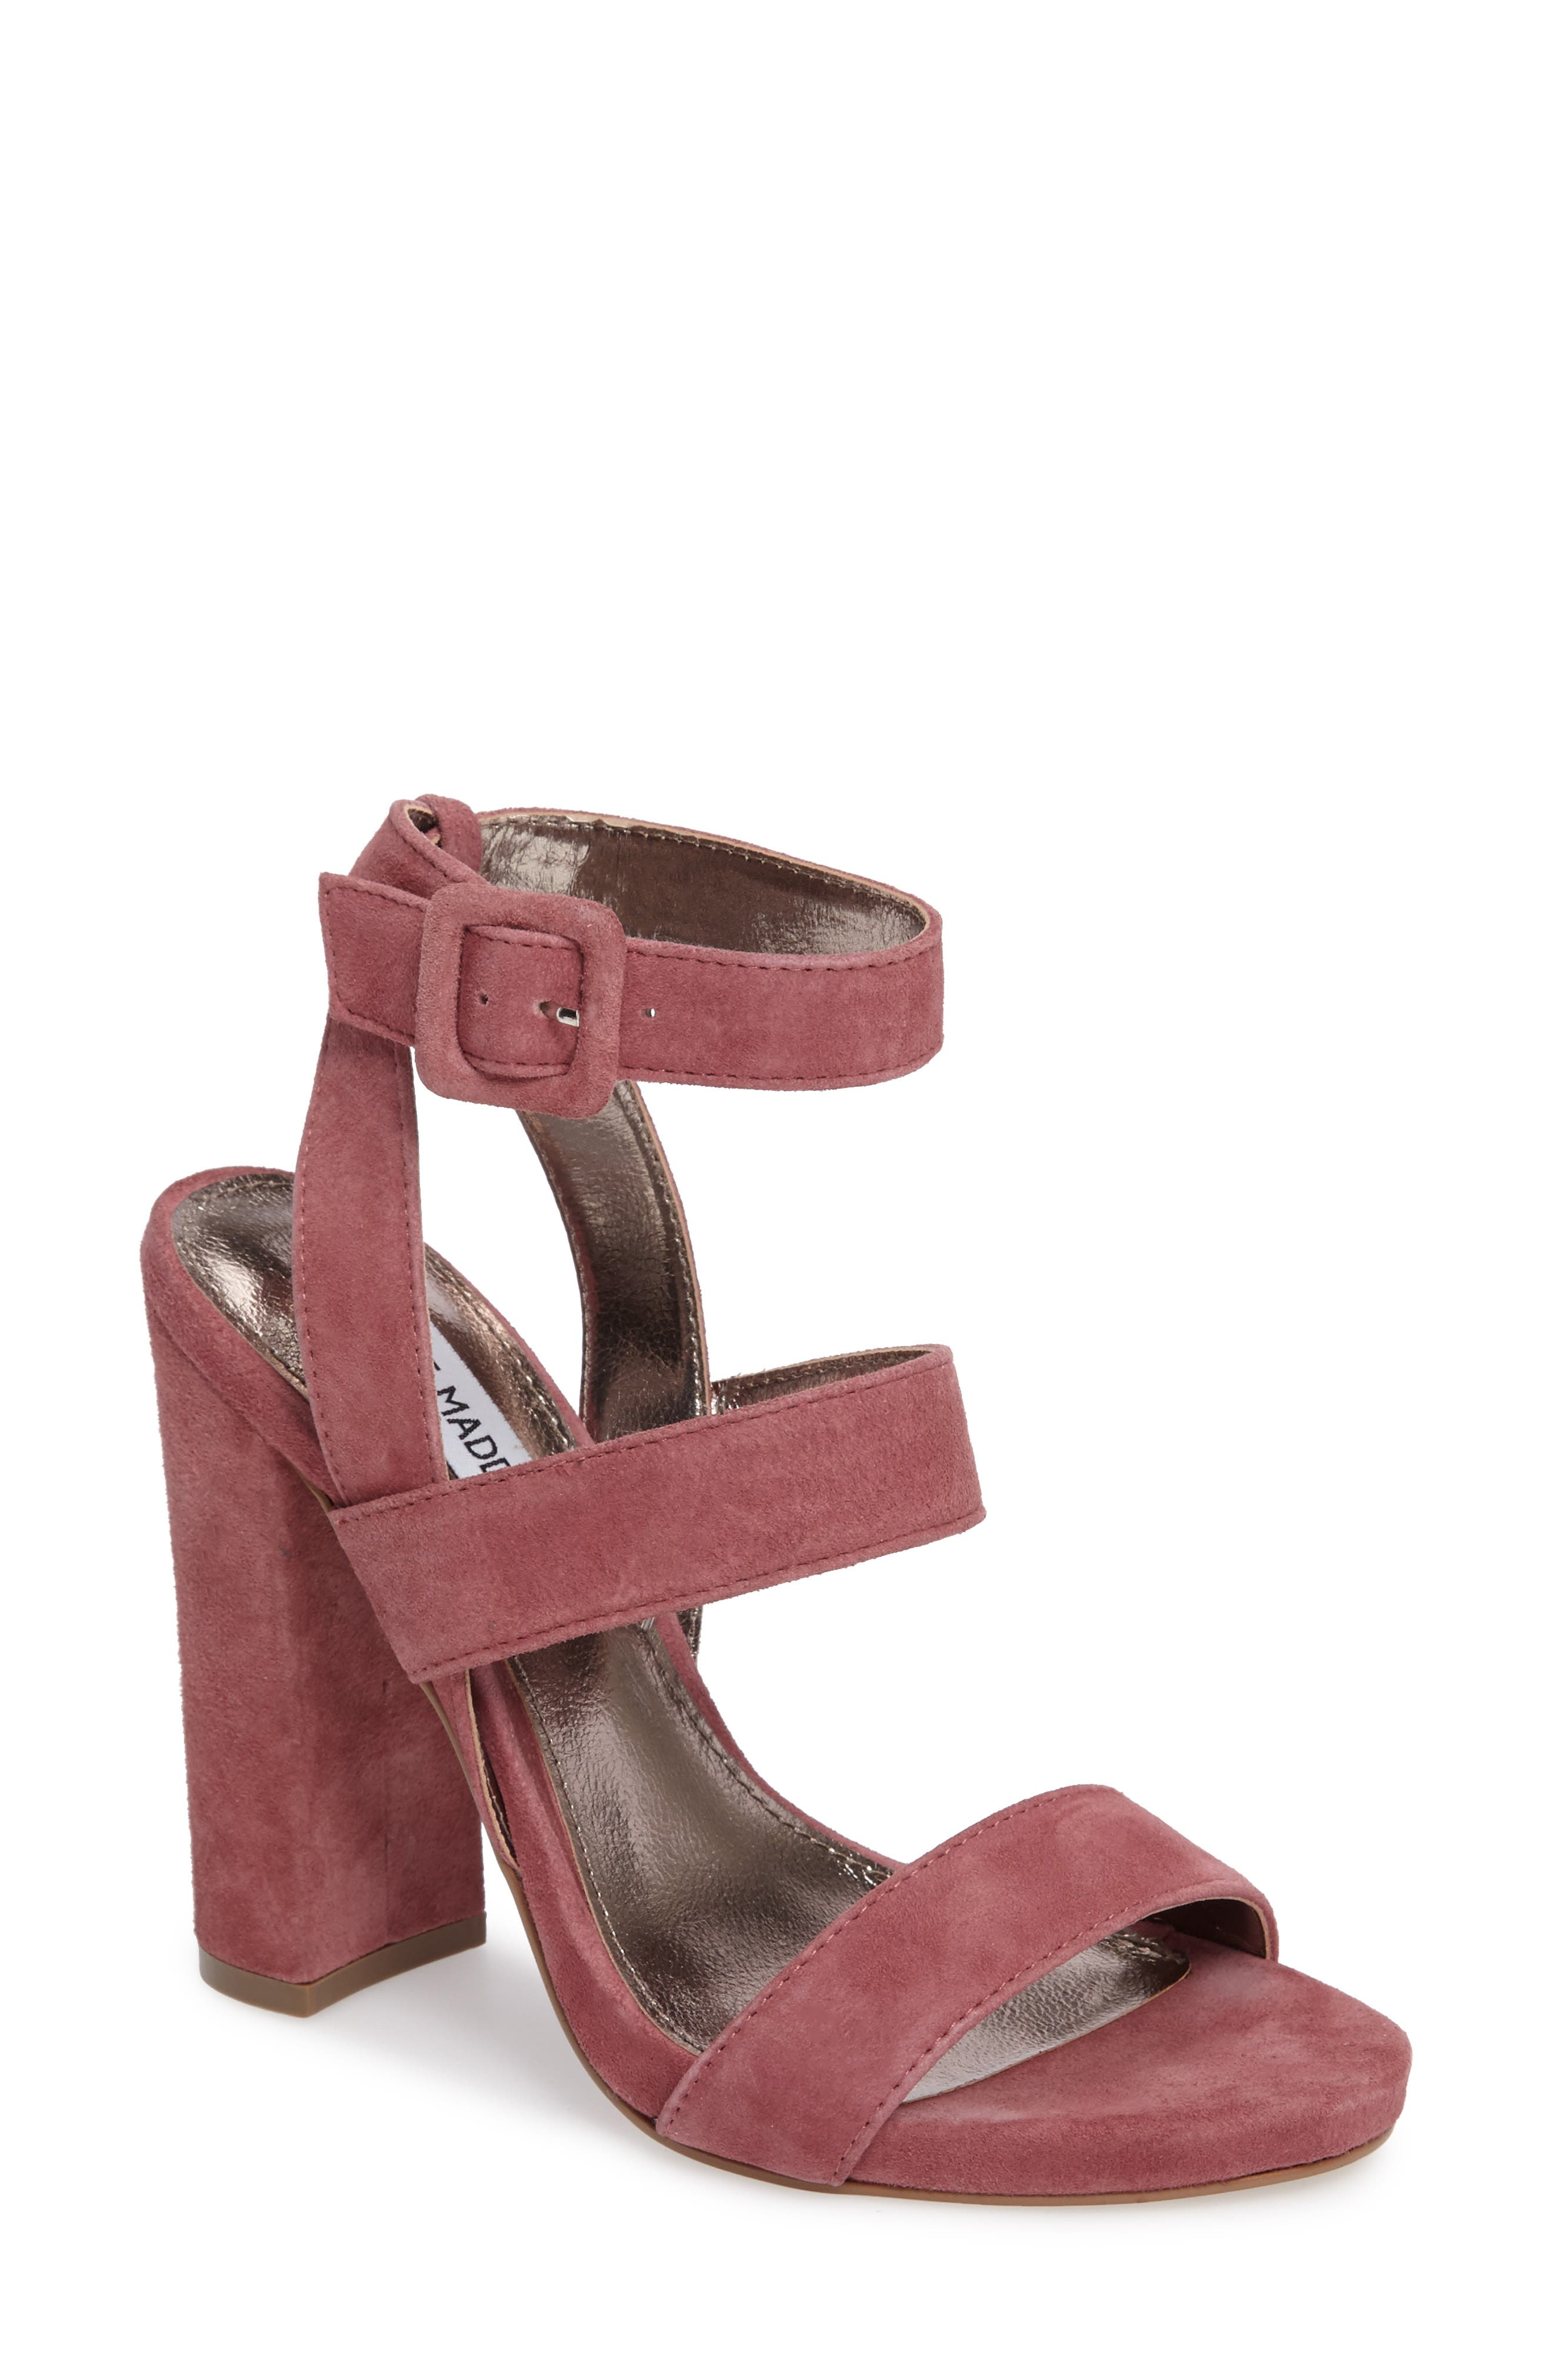 Alternate Image 1 Selected - Steve Madden Canaan Sandal (Women)